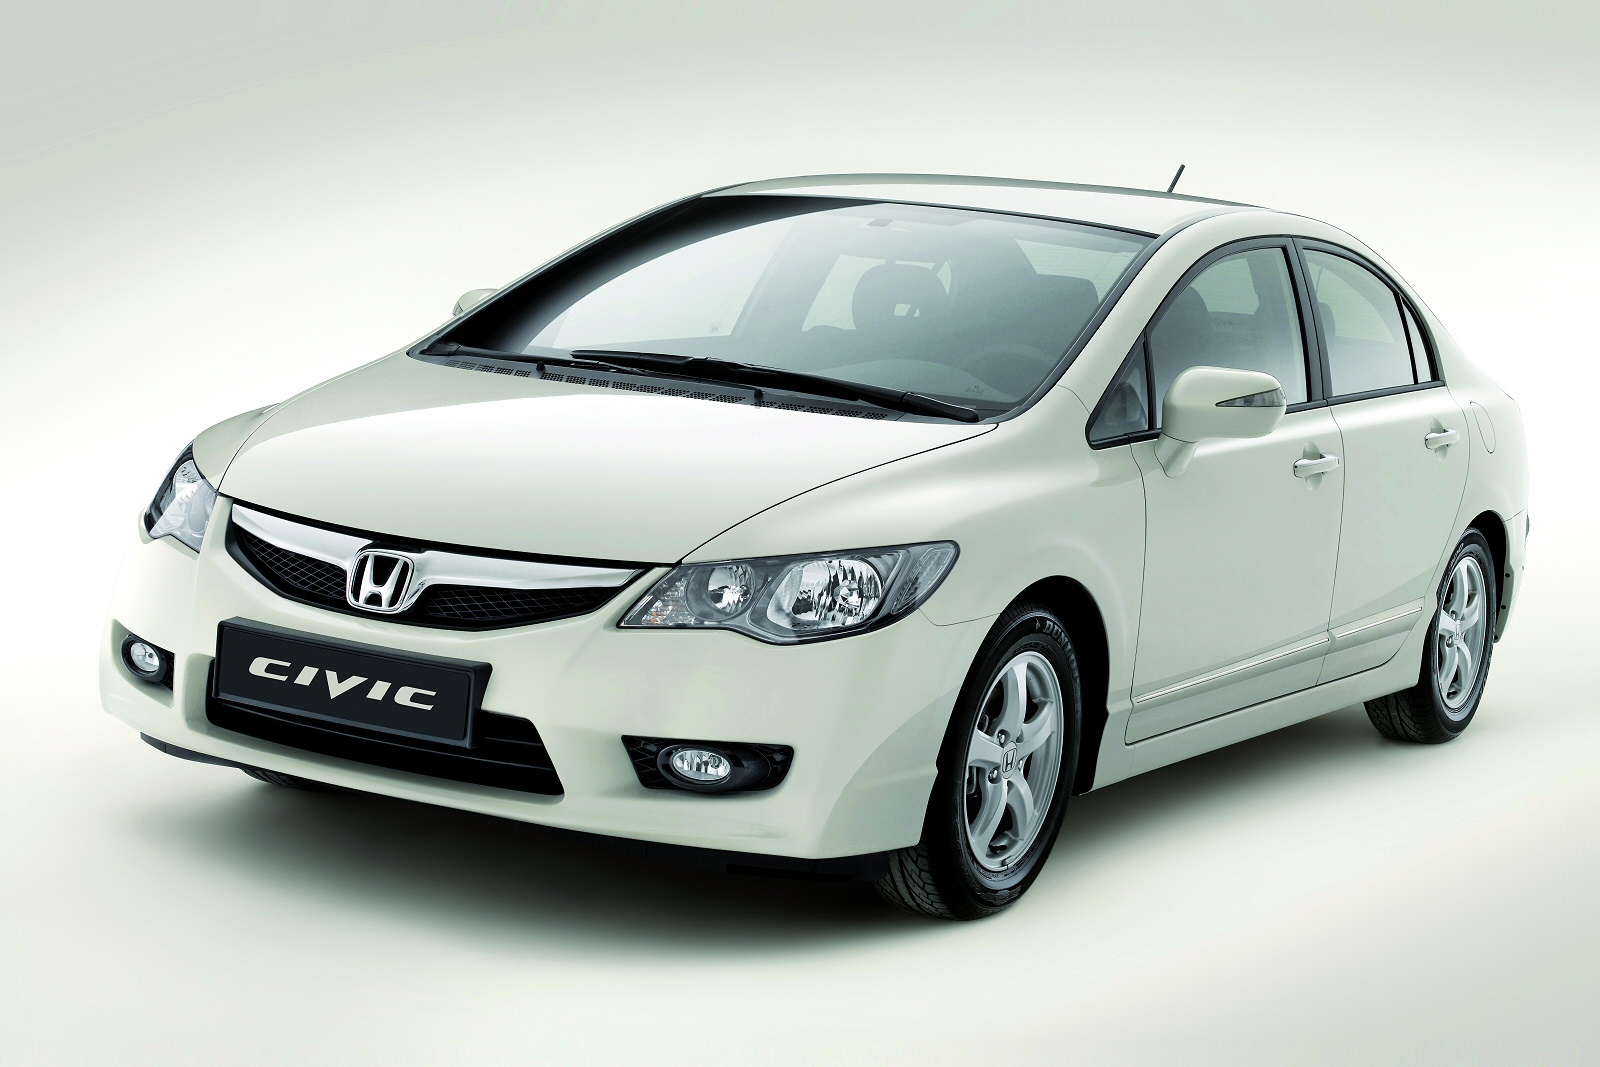 Futurama Honda Civic 2006 2010 Range Independent Used Review Hybrid Engine The Engines Torque To Best Effect Of Special Relevance Is A Combined Fuel Consumption Figure 614mpg And Carbon Dioxide Emissions Just 109g Km